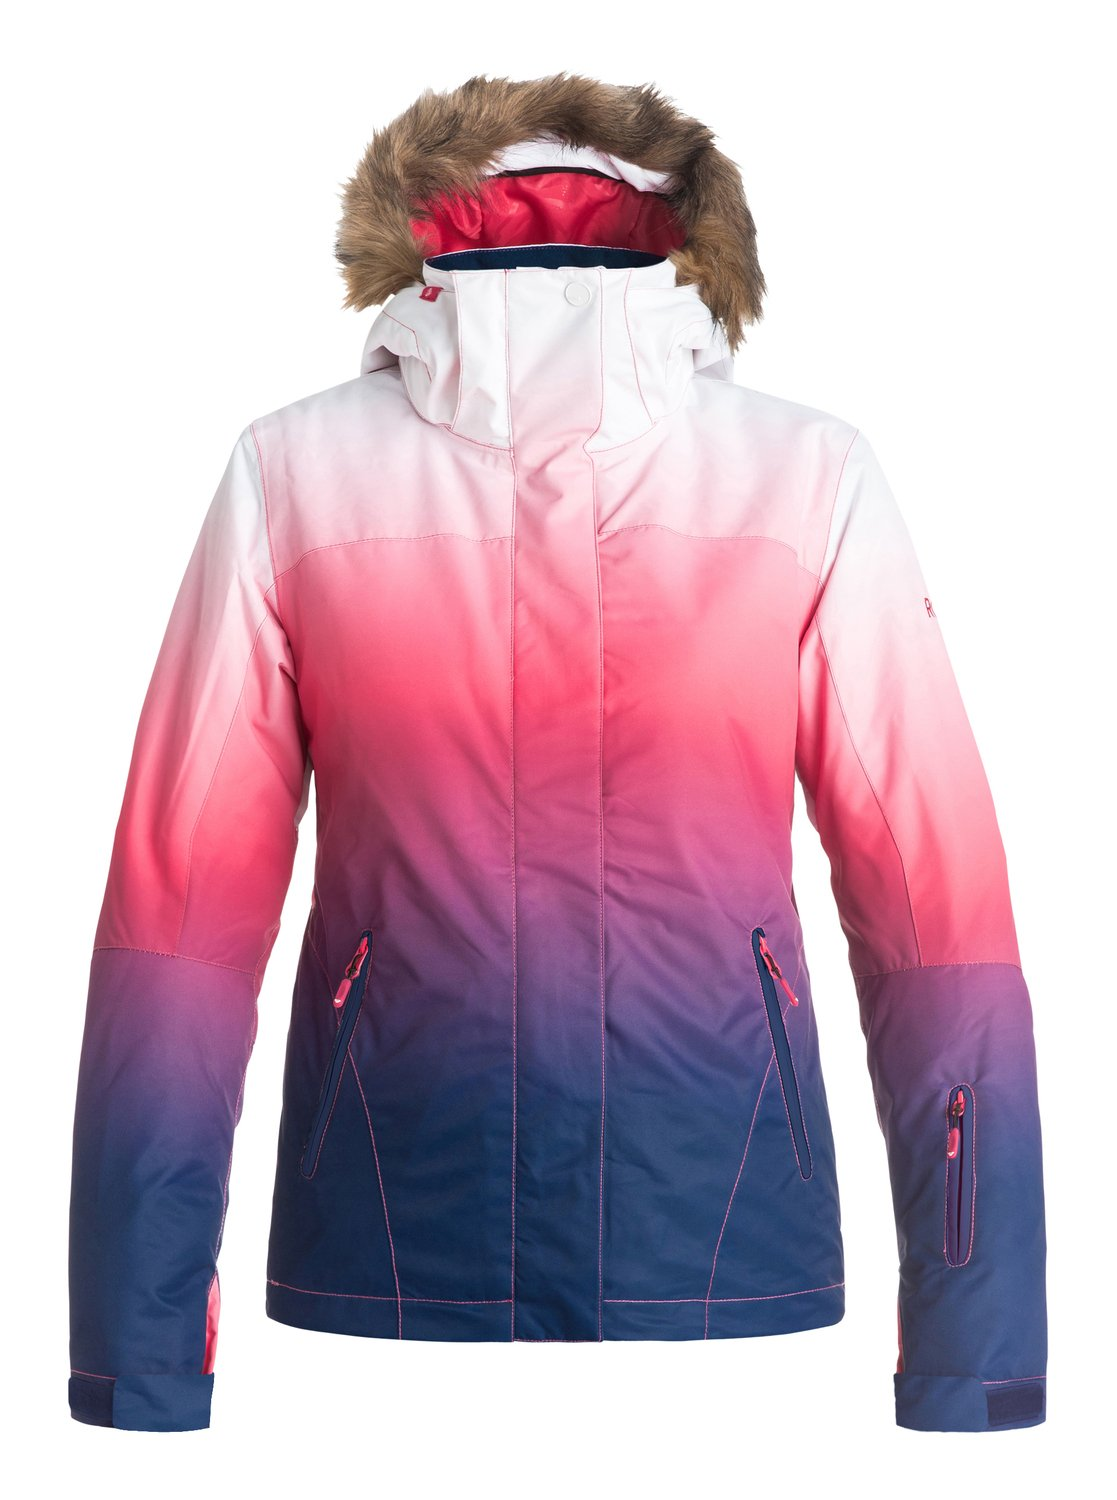 Сноубордическая куртка Jet Ski GradientThe Jet Ski Gradient snow jacket for women comes complete with a sporty yet feminine slim fit and cosy removable fur. The fashionable dip-dye gradient effect has been woven with 10K ROXY DryFlight® technology waterproofing for reliable waterproof and breathable protection in a wide range of winter conditions. Other features include Warmflight® level 2 insulation for low-bulk warmth and critically-taped seams for extra protection in the most exposed areas.<br>